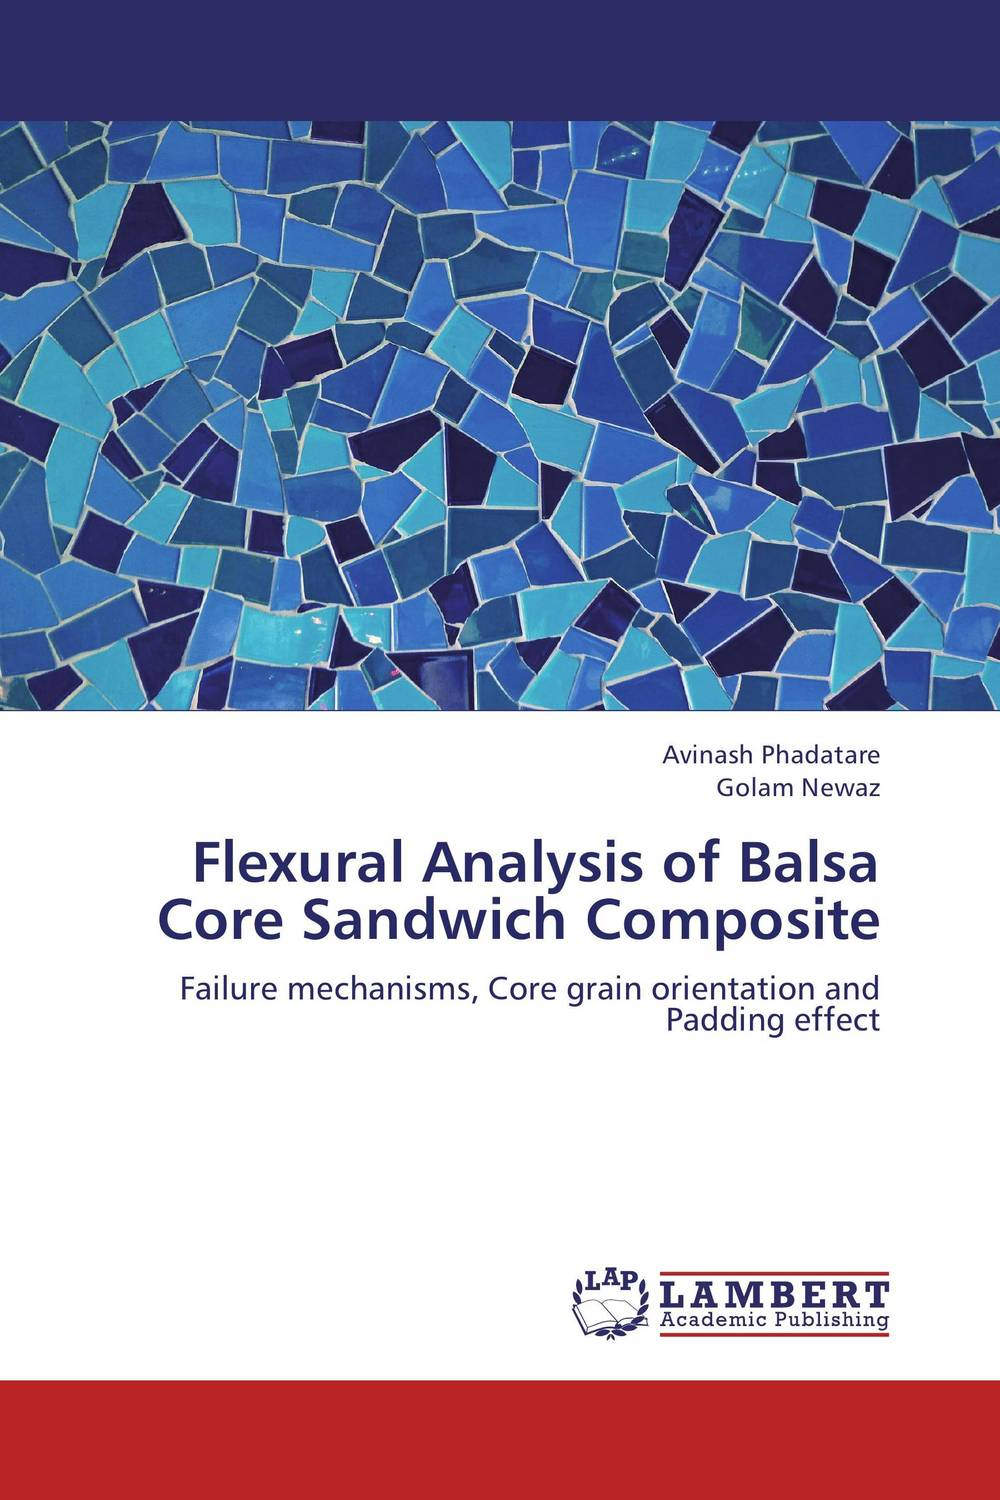 Flexural Analysis of Balsa Core Sandwich Composite darlington hove the finite element analysis of a composite sandwich beam